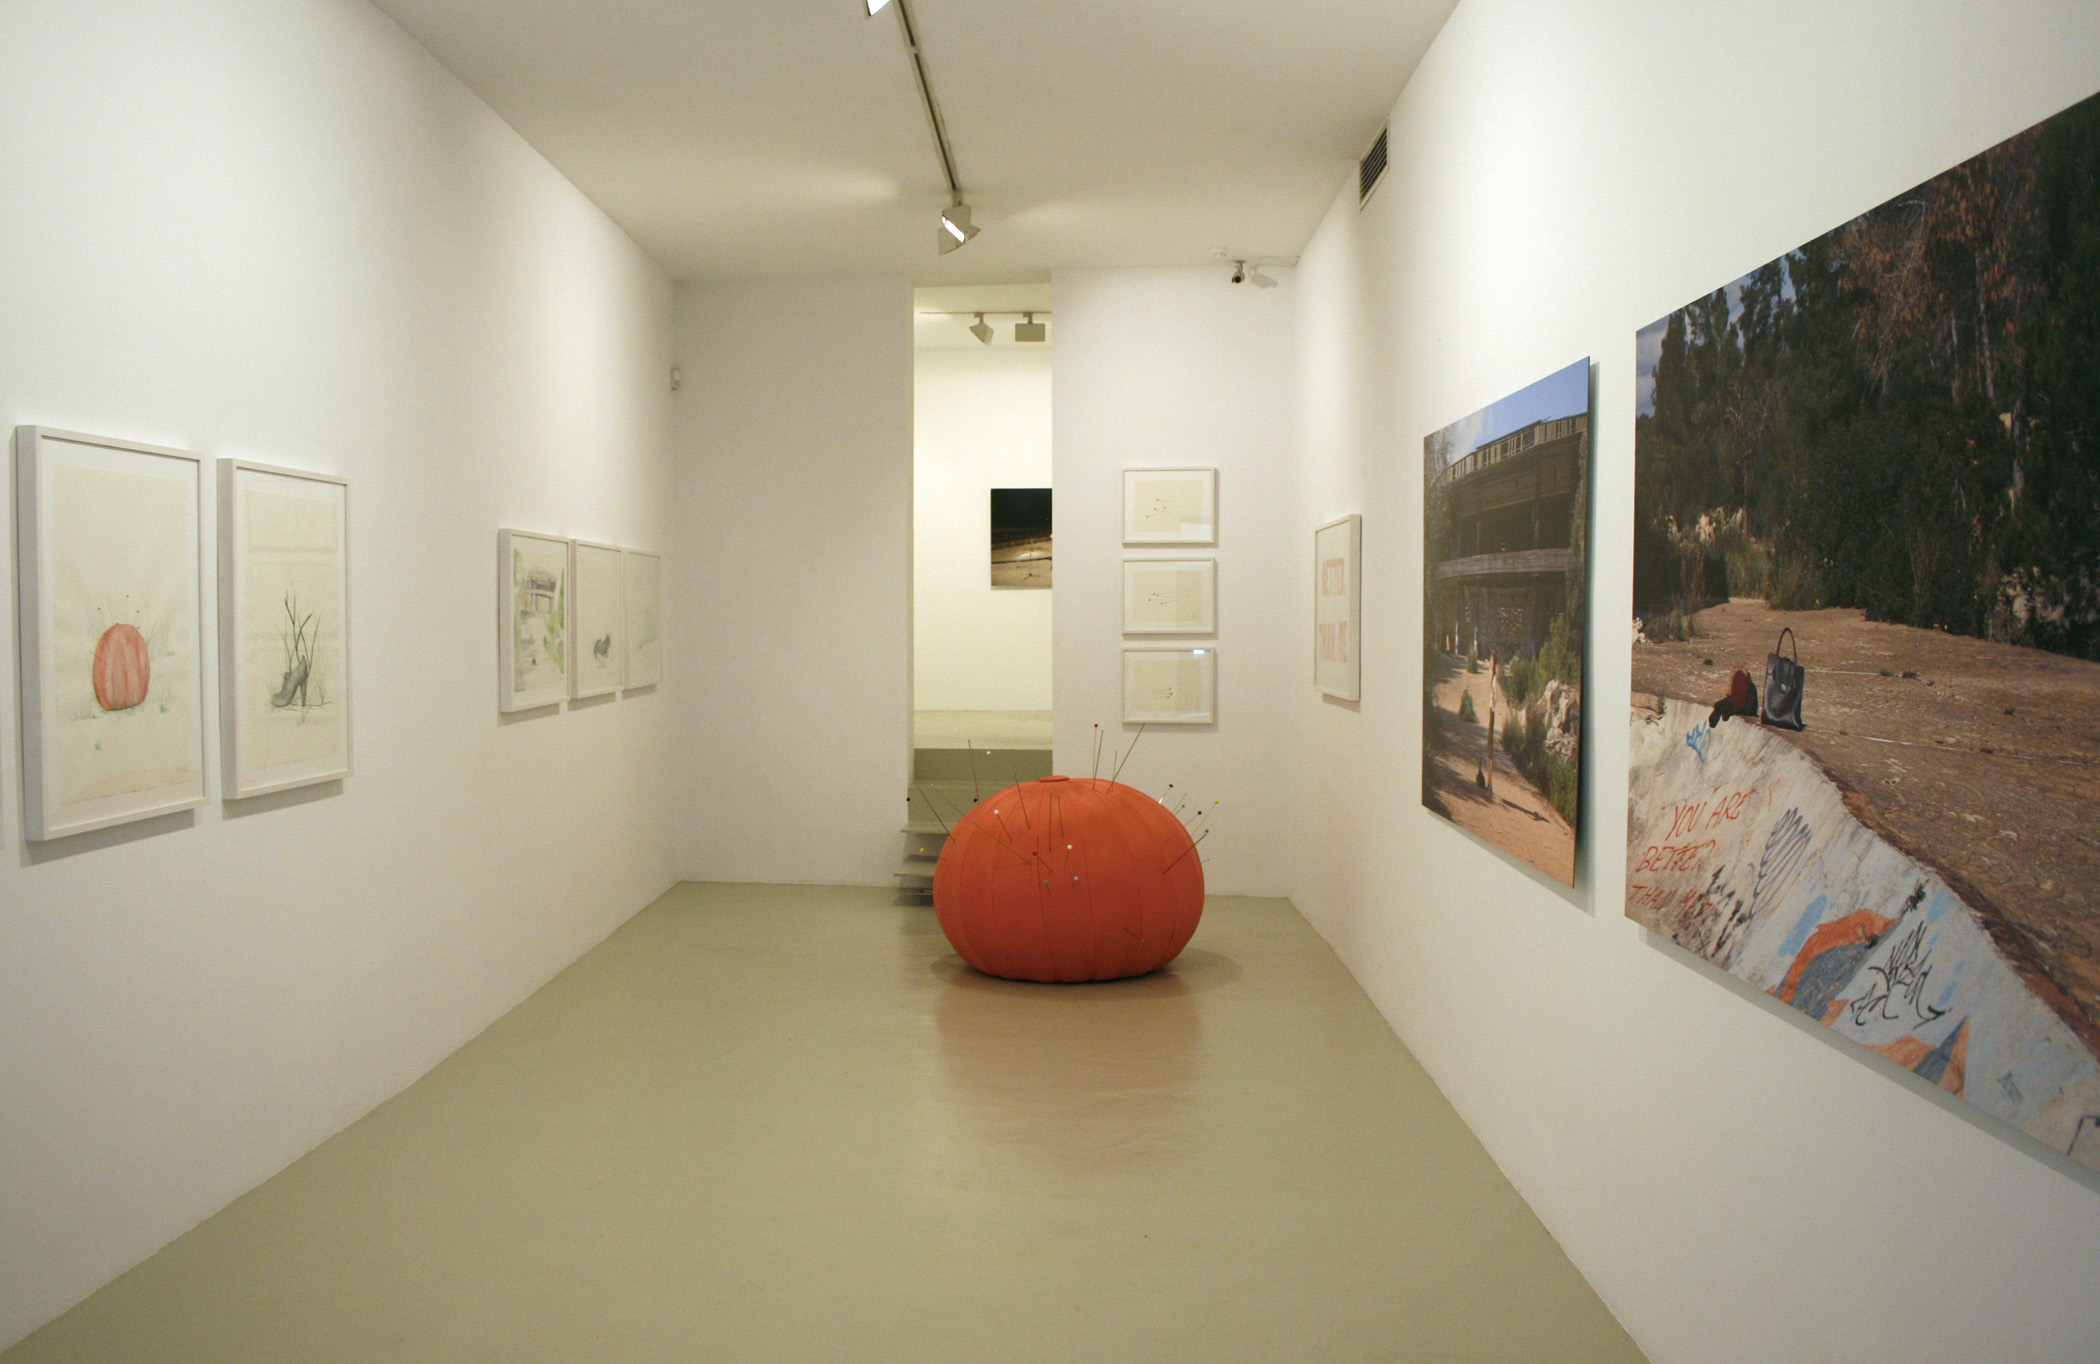 Exhibition view from Aina Perelló, 2008